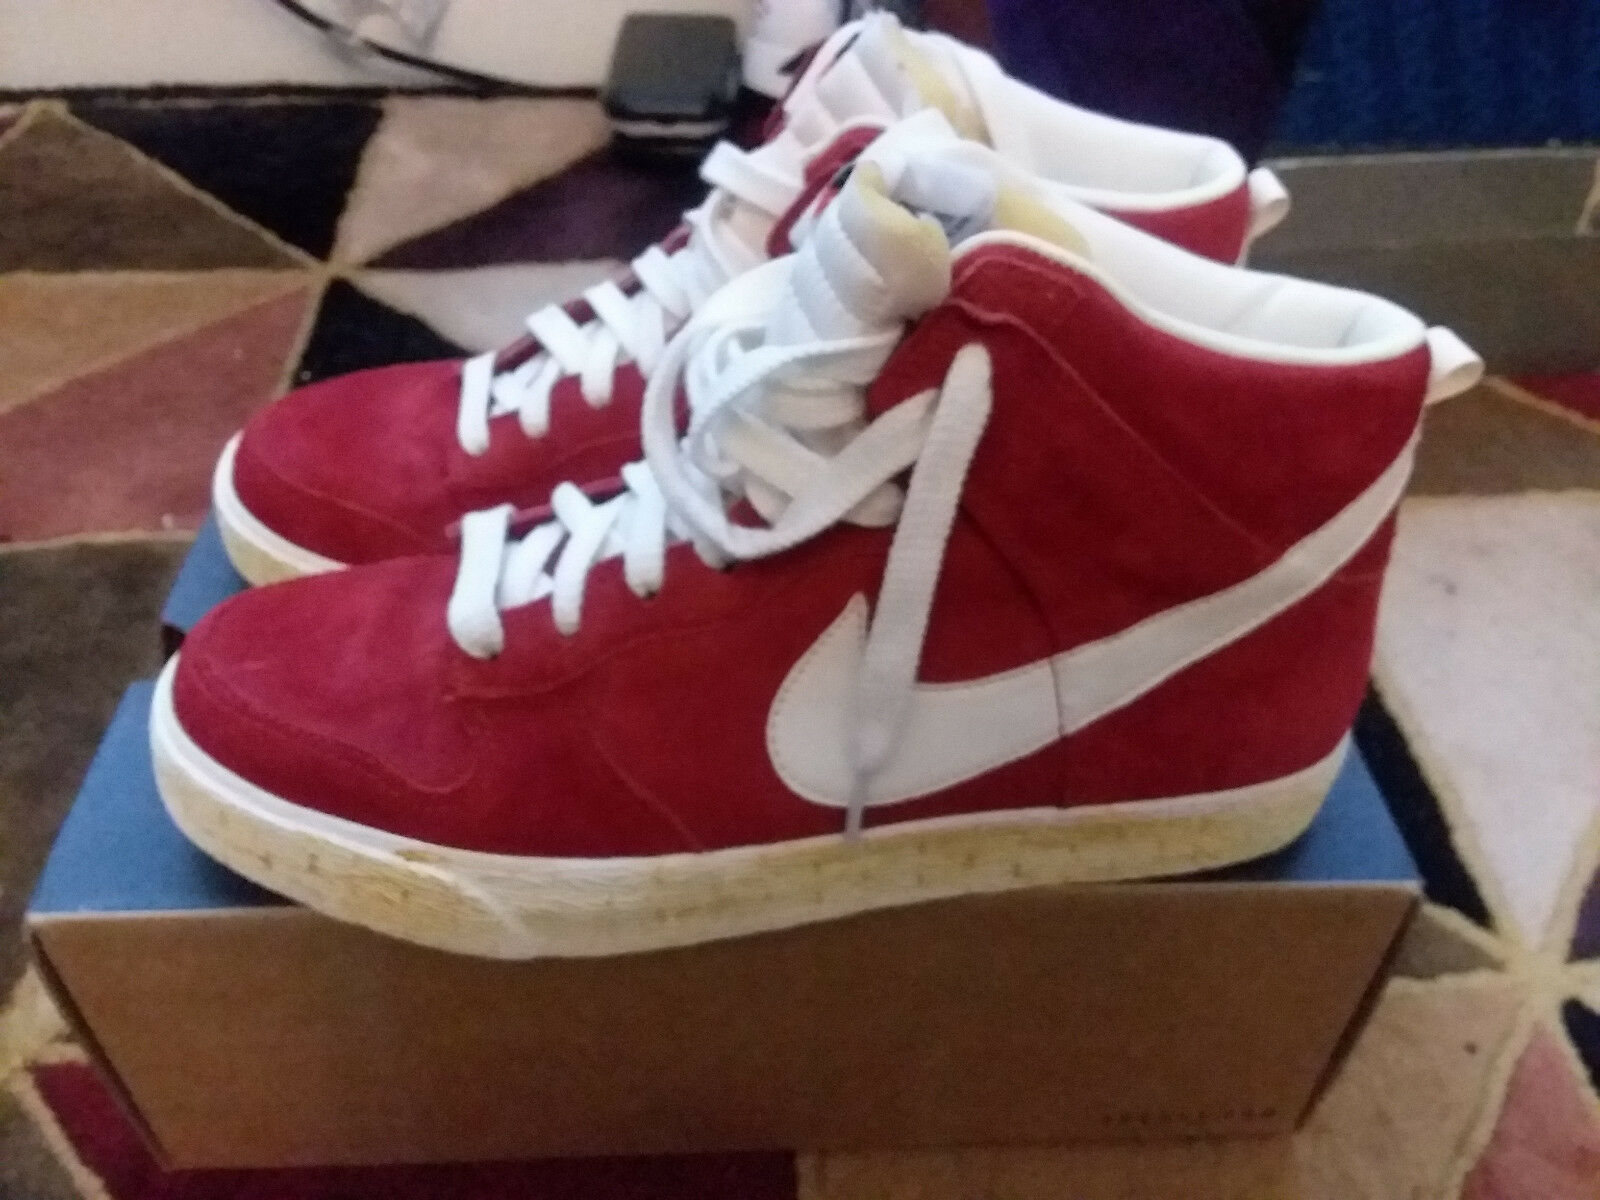 47c55f742fc2e ... Nike Dunk High AC Varsity Red Suede Sail QS size size size 9.5  398263-601 ...